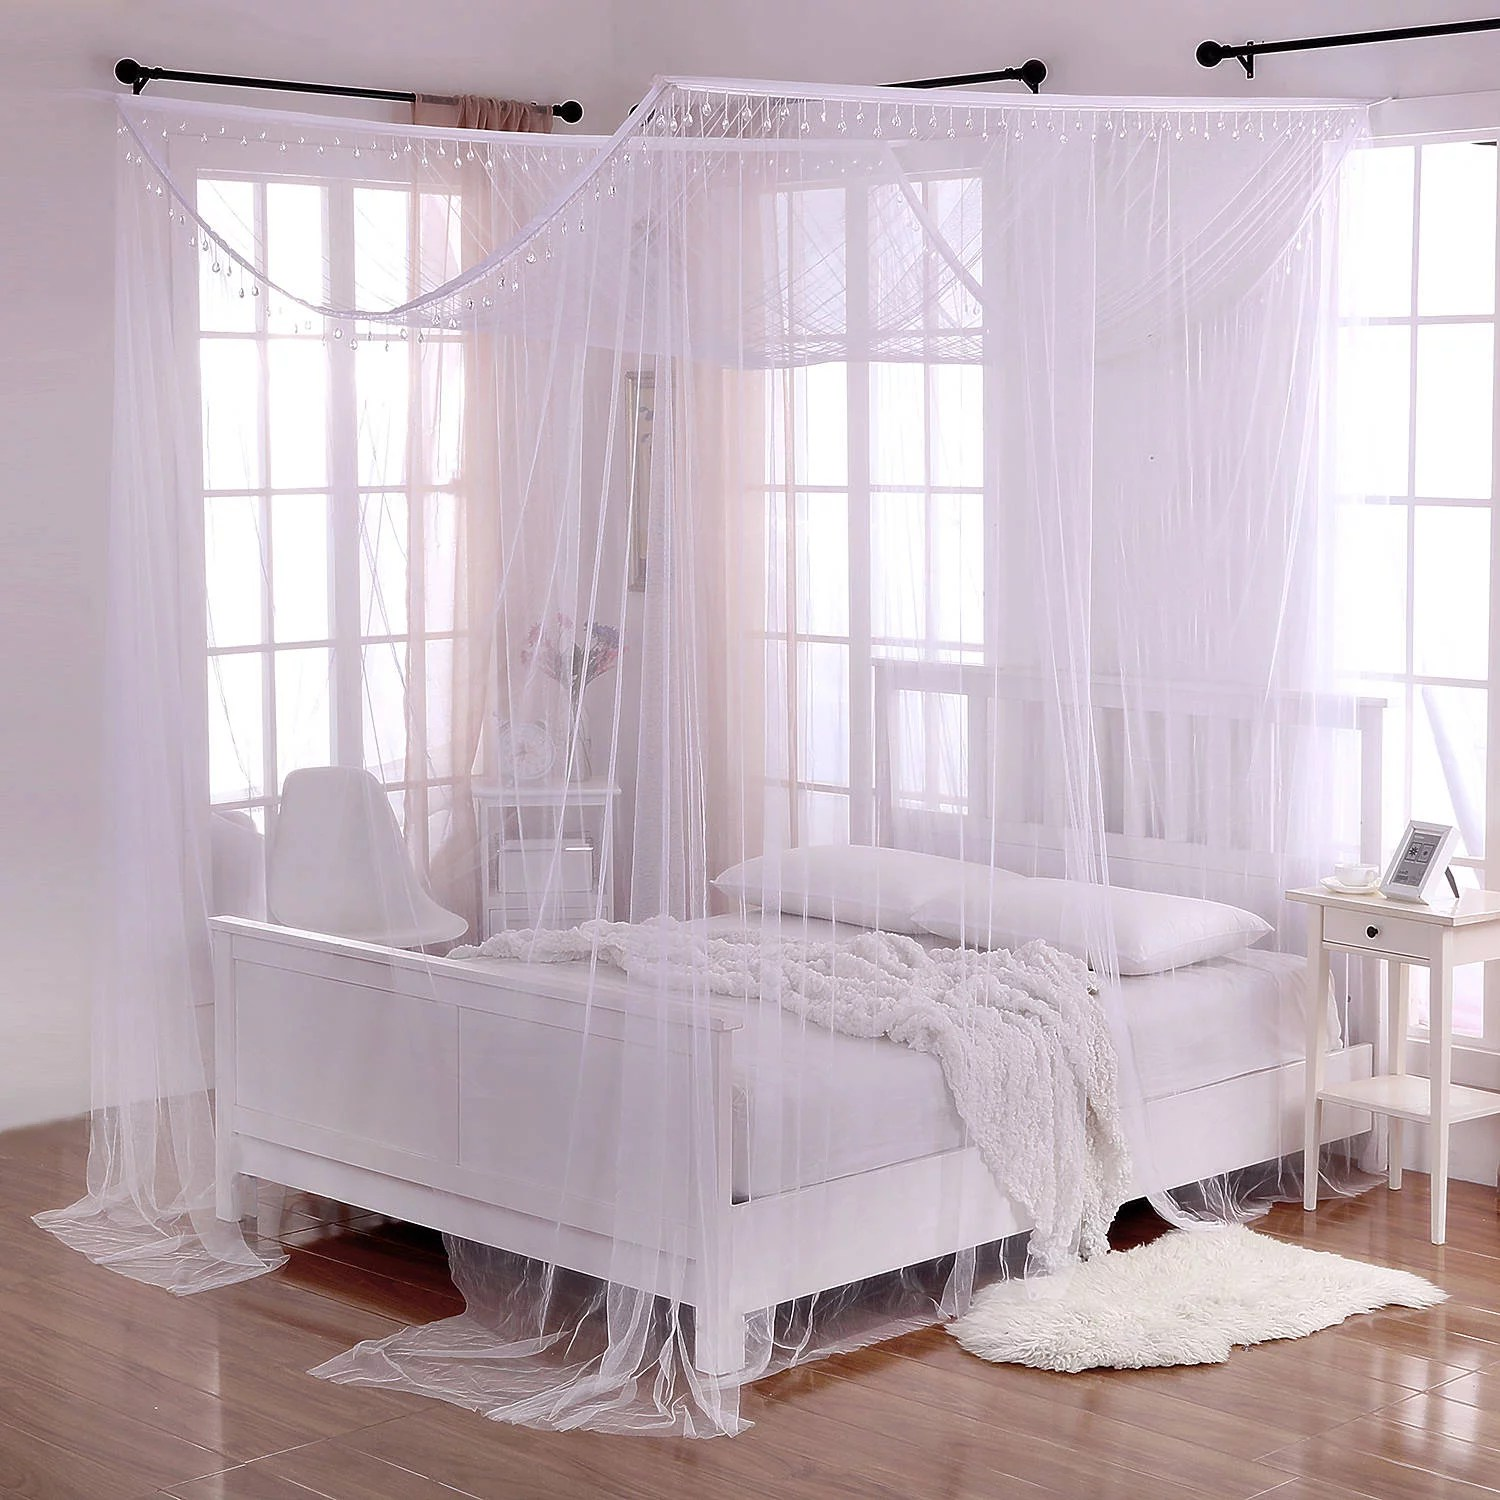 4post Bed White Crystal Palace 4 Post Bed Sheer Mosquito Net Panel Canopy